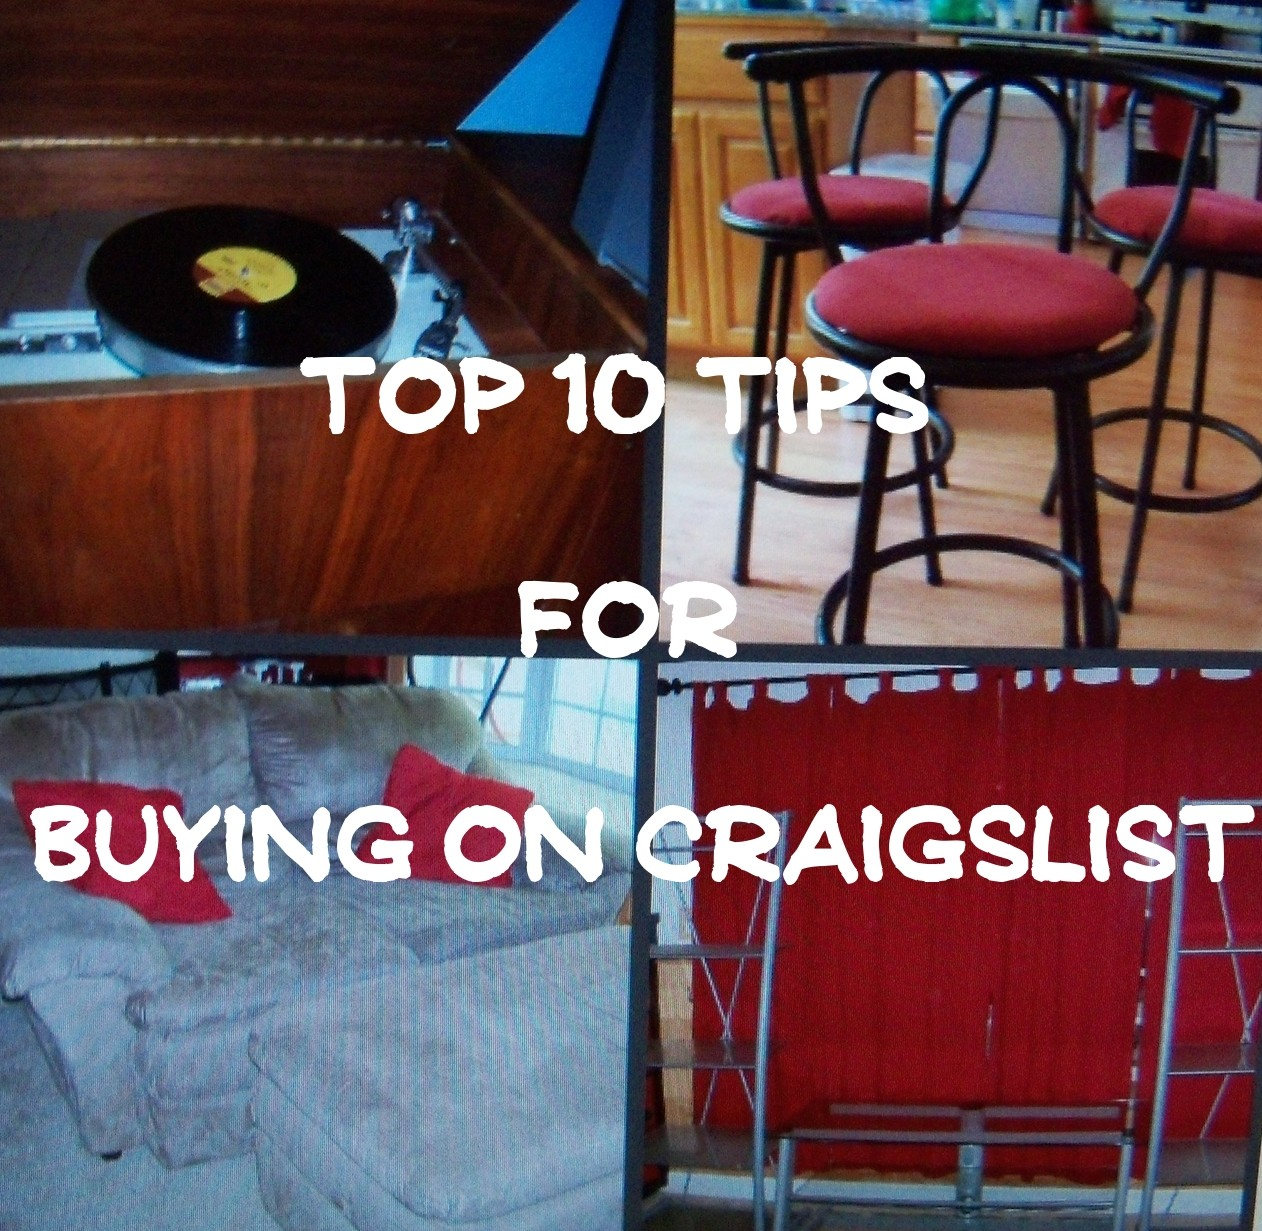 tips from a pro part 2 top 10 tips for buying on craigslist. Black Bedroom Furniture Sets. Home Design Ideas